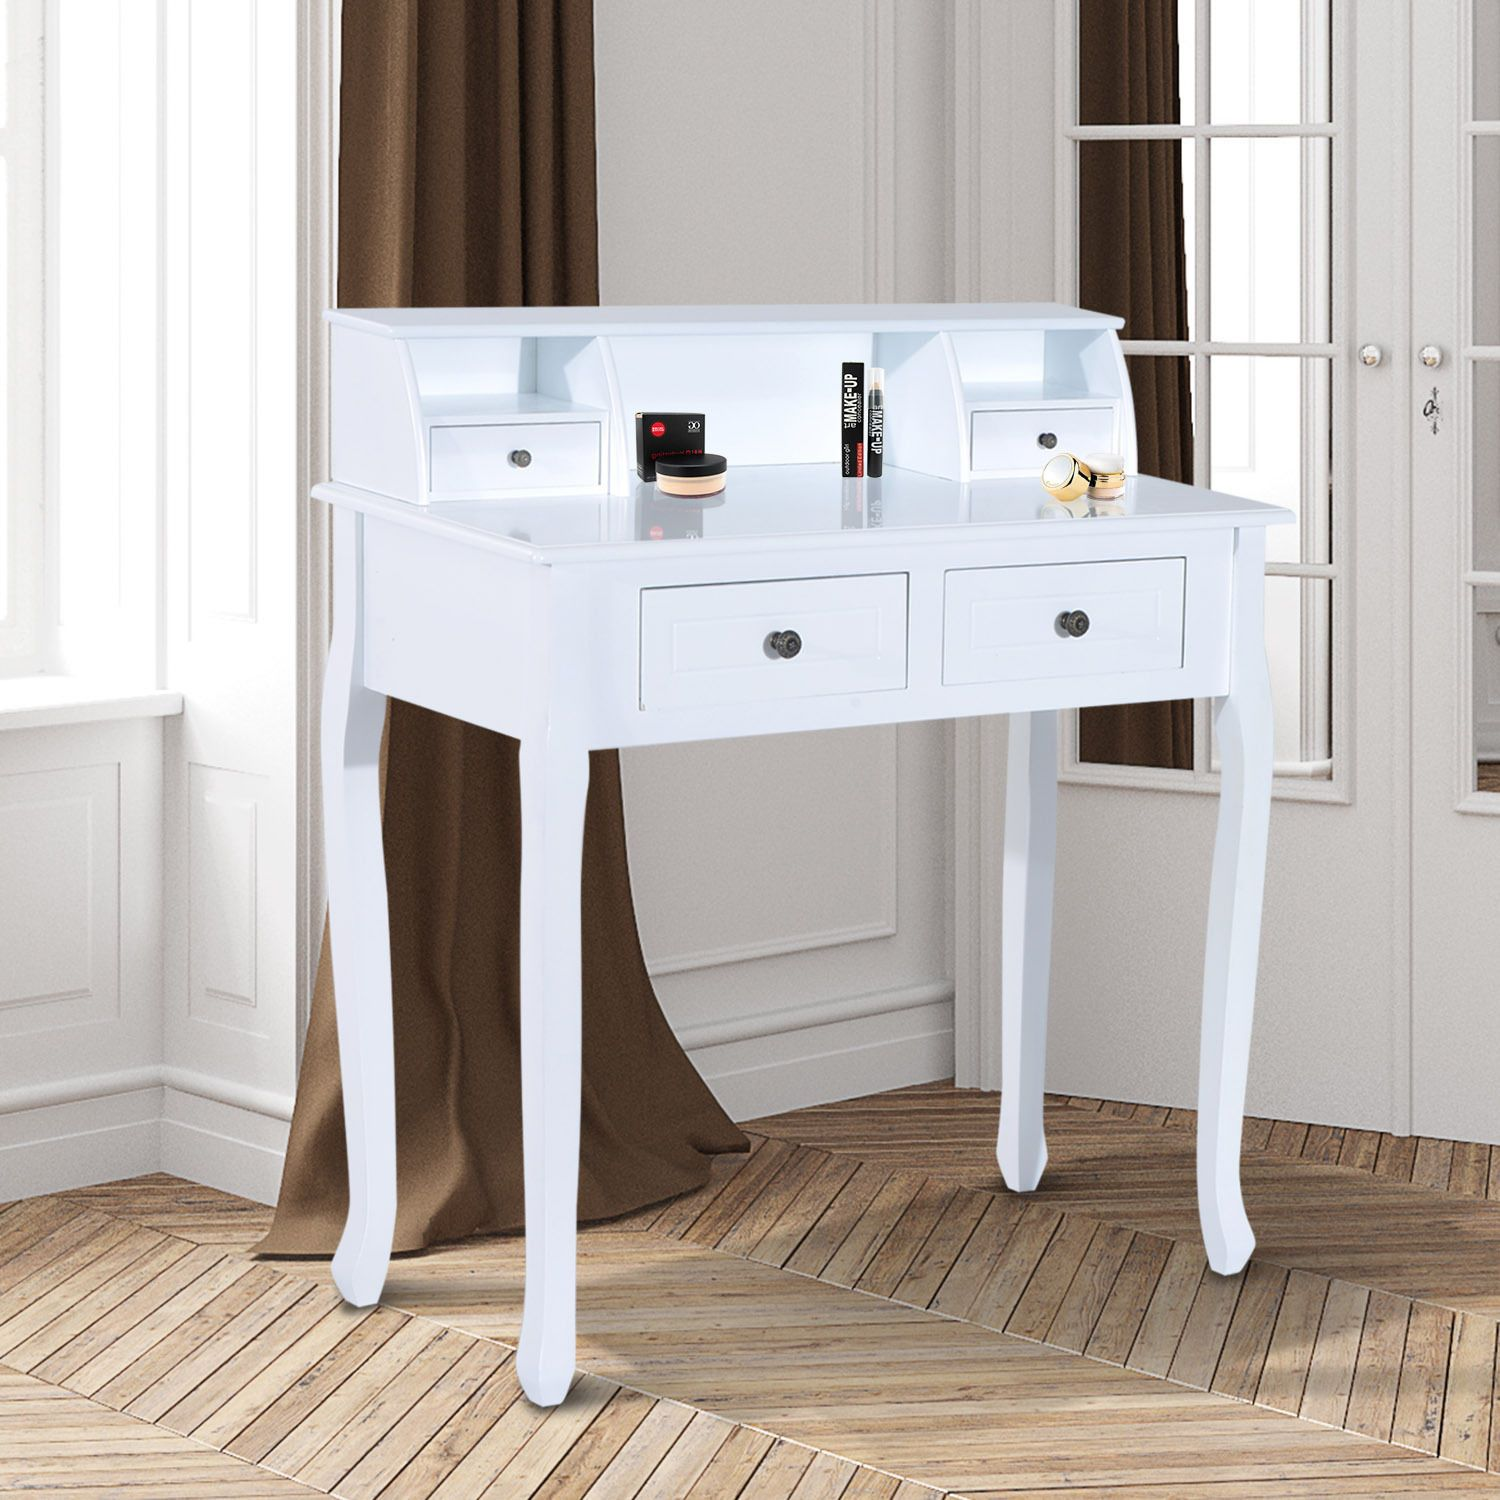 Dressing Table Chic Vanity MakeUp Desk with 4